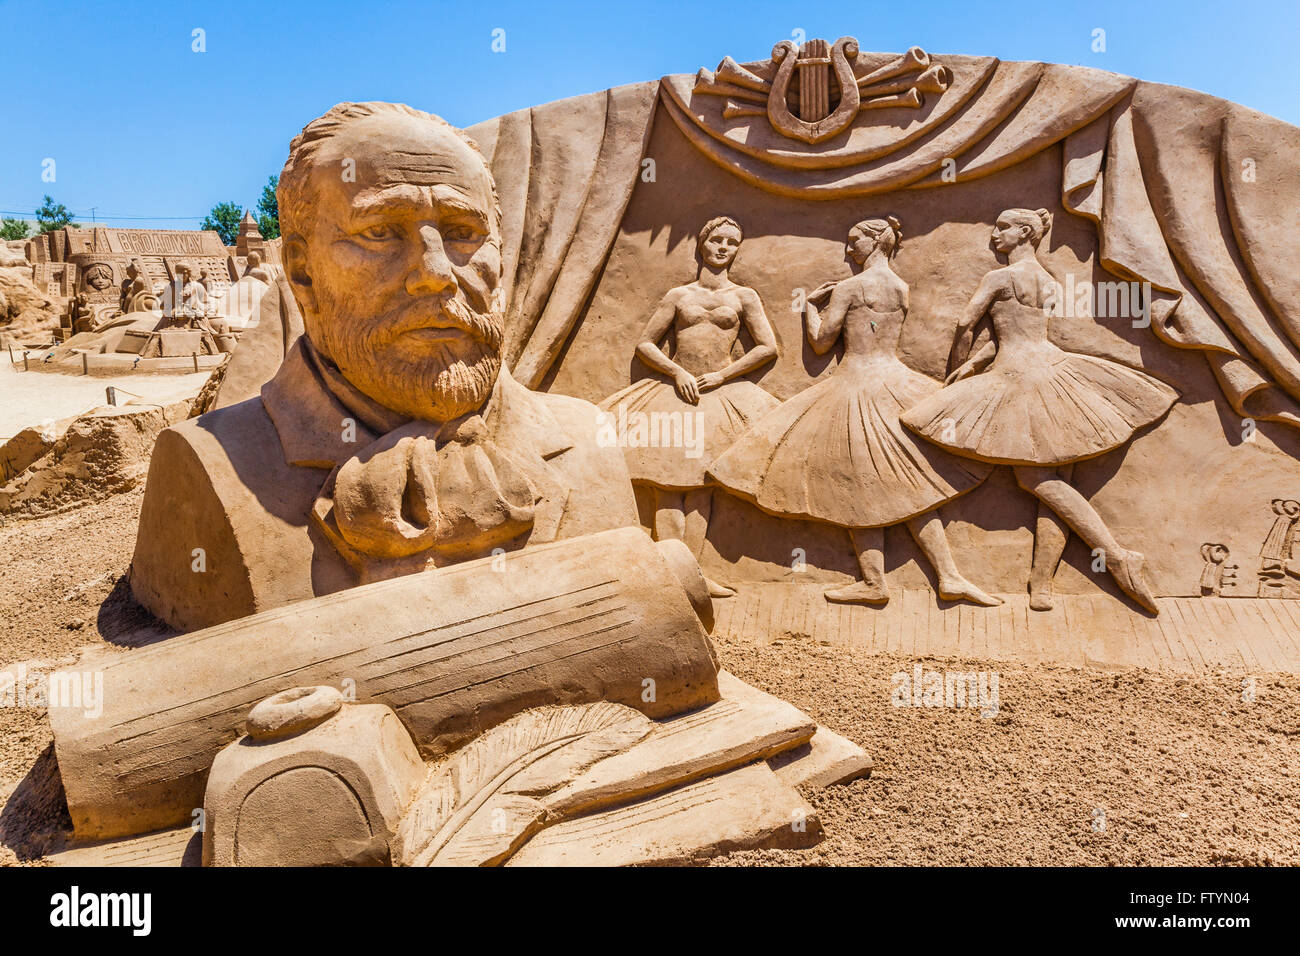 Portugal, Algarve, Faro district, Pera, Tschaikovsky sculpture at the FIESA International Sand Festival - Stock Image